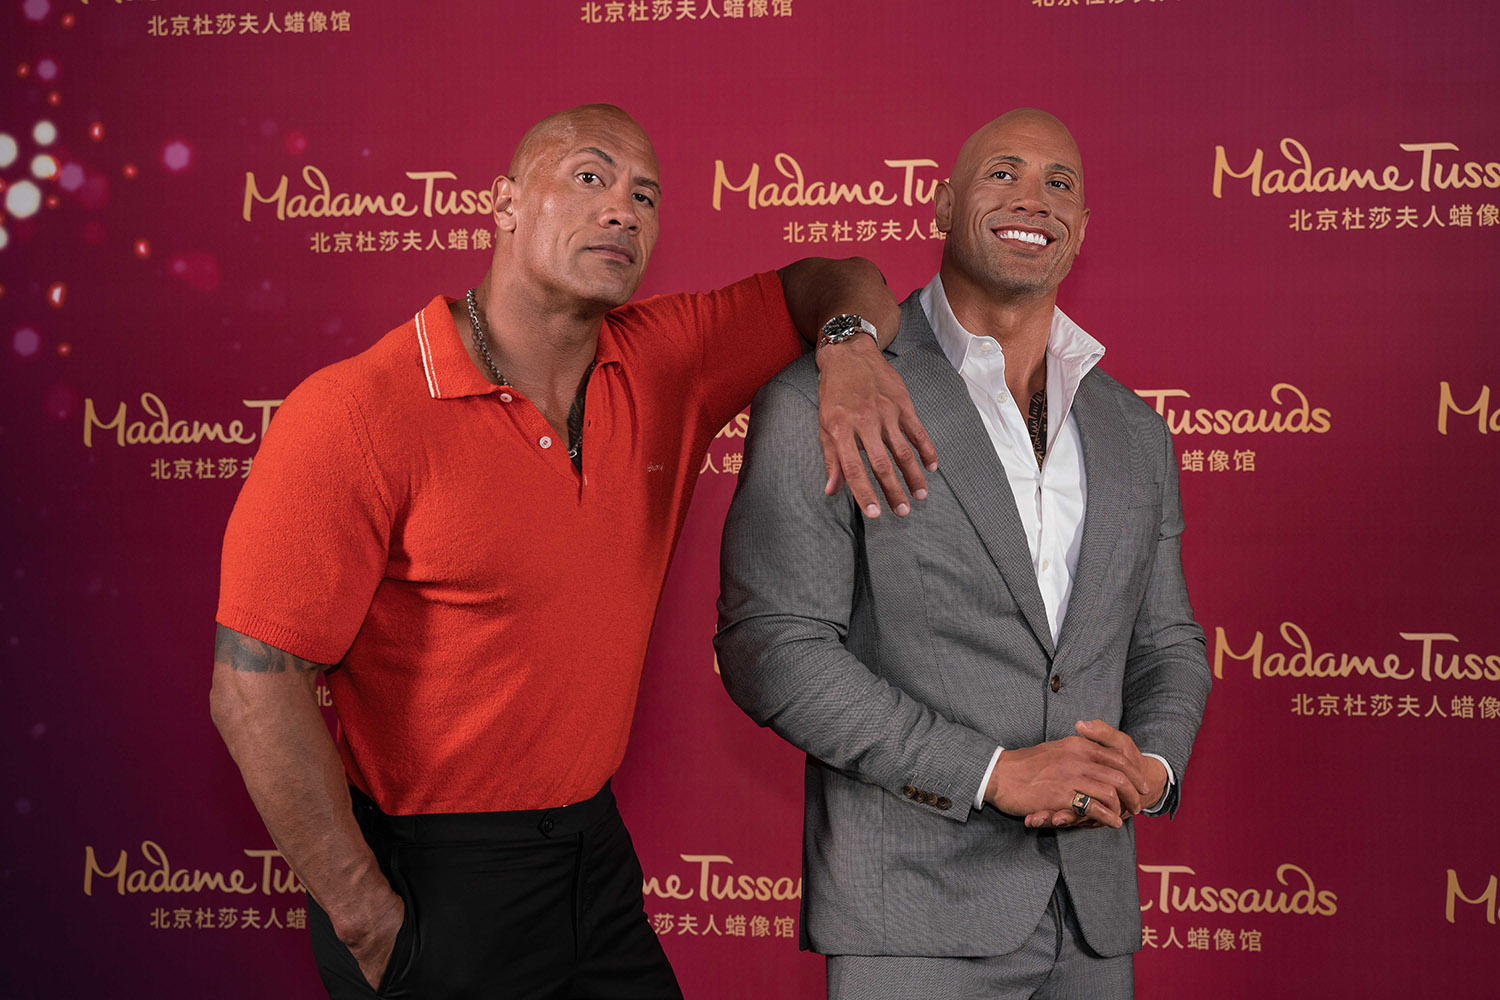 Dwayne Johnson with his figure